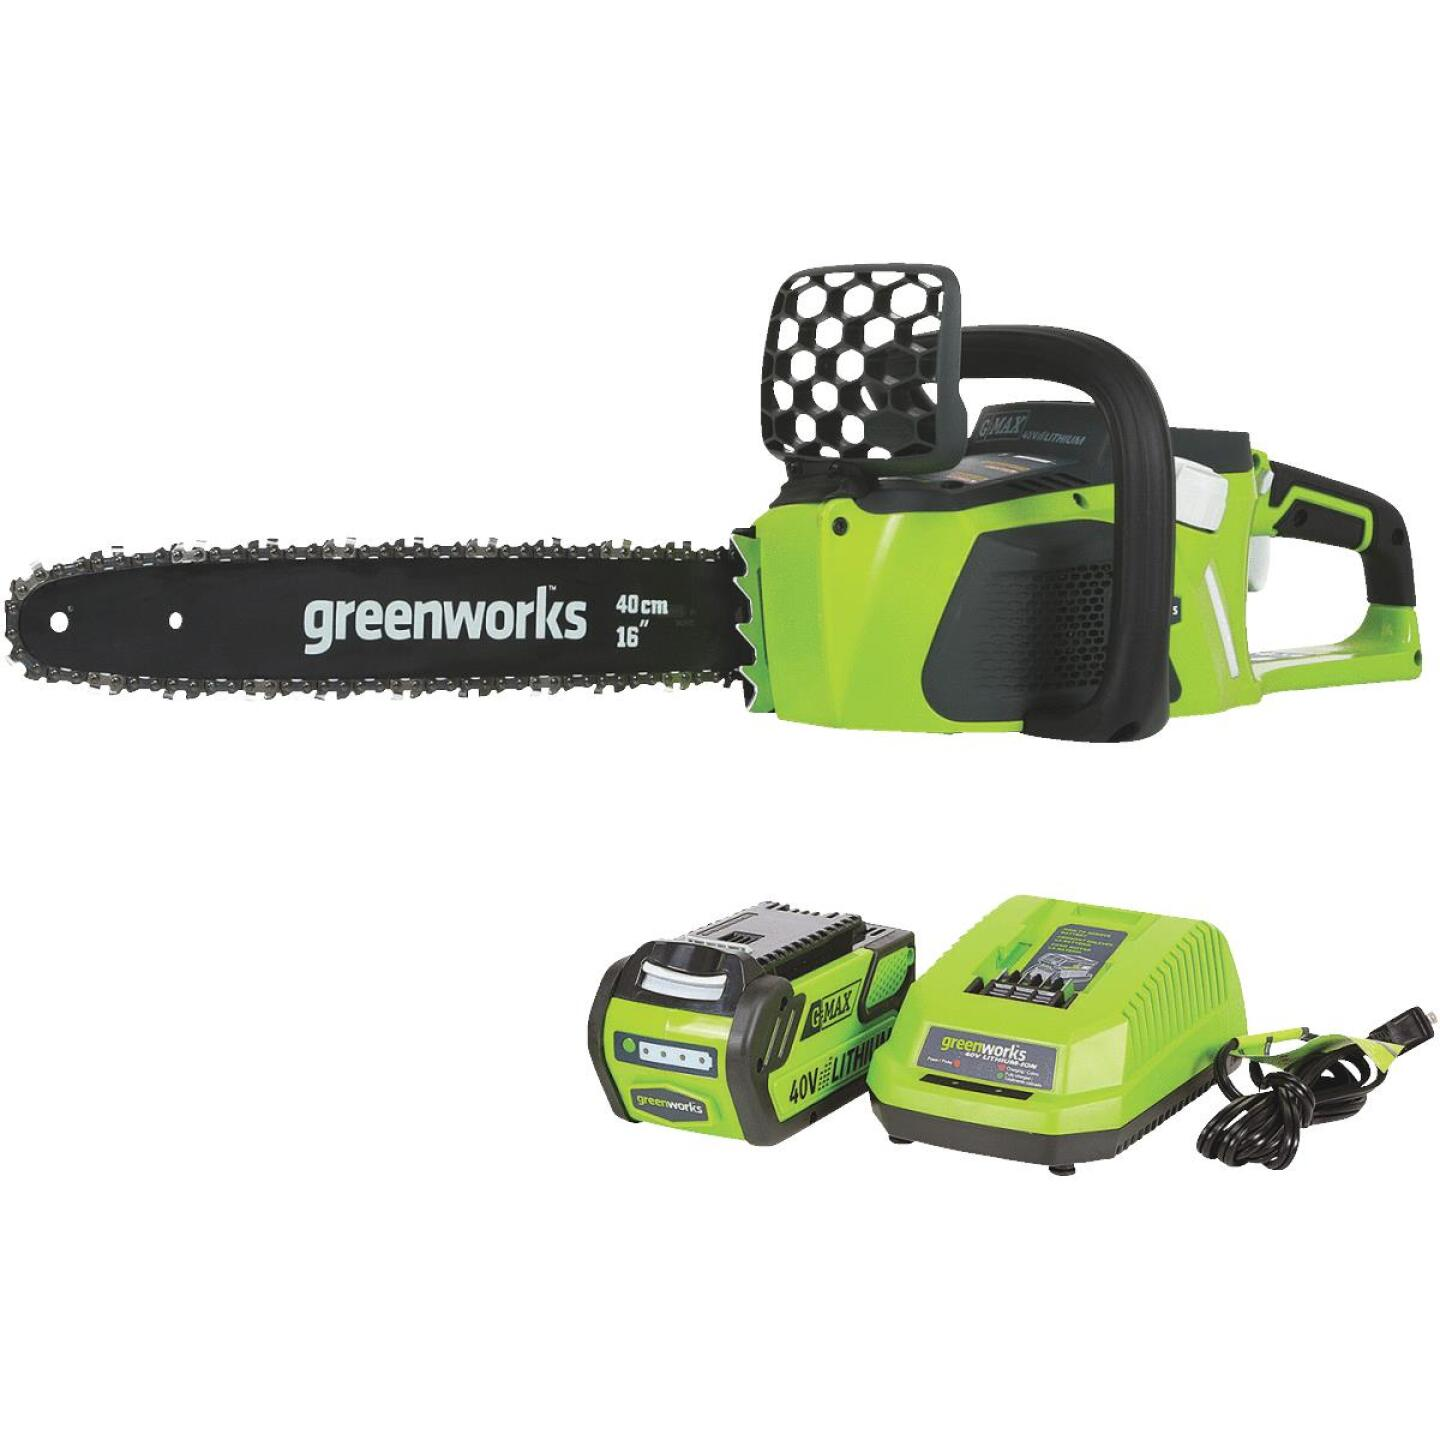 Greenworks G-MAX 16 In. 40V Lithium Ion Brushless Cordless Chainsaw Image 1